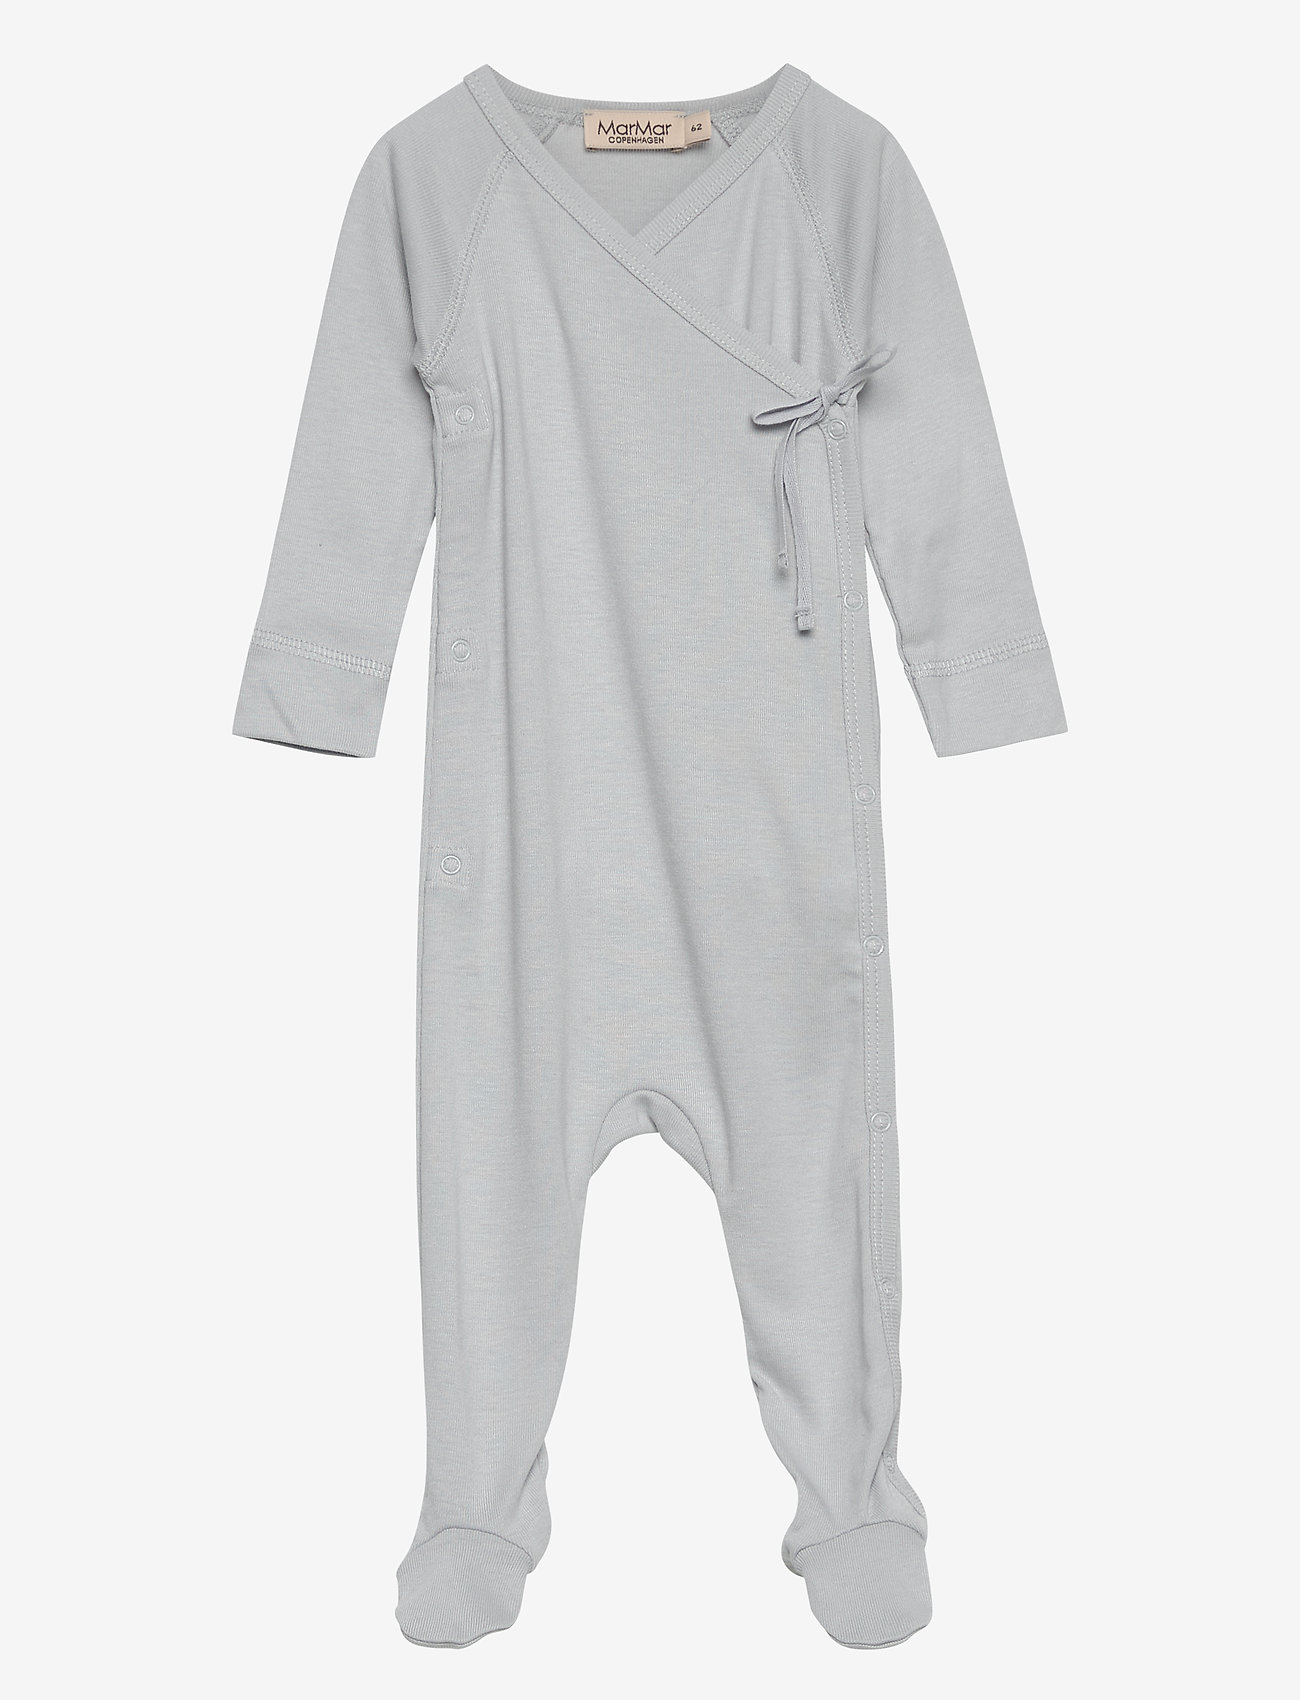 MarMar Cph - New Born Gift Box - suit, hat and blanket - langärmelig - pale blue - 1